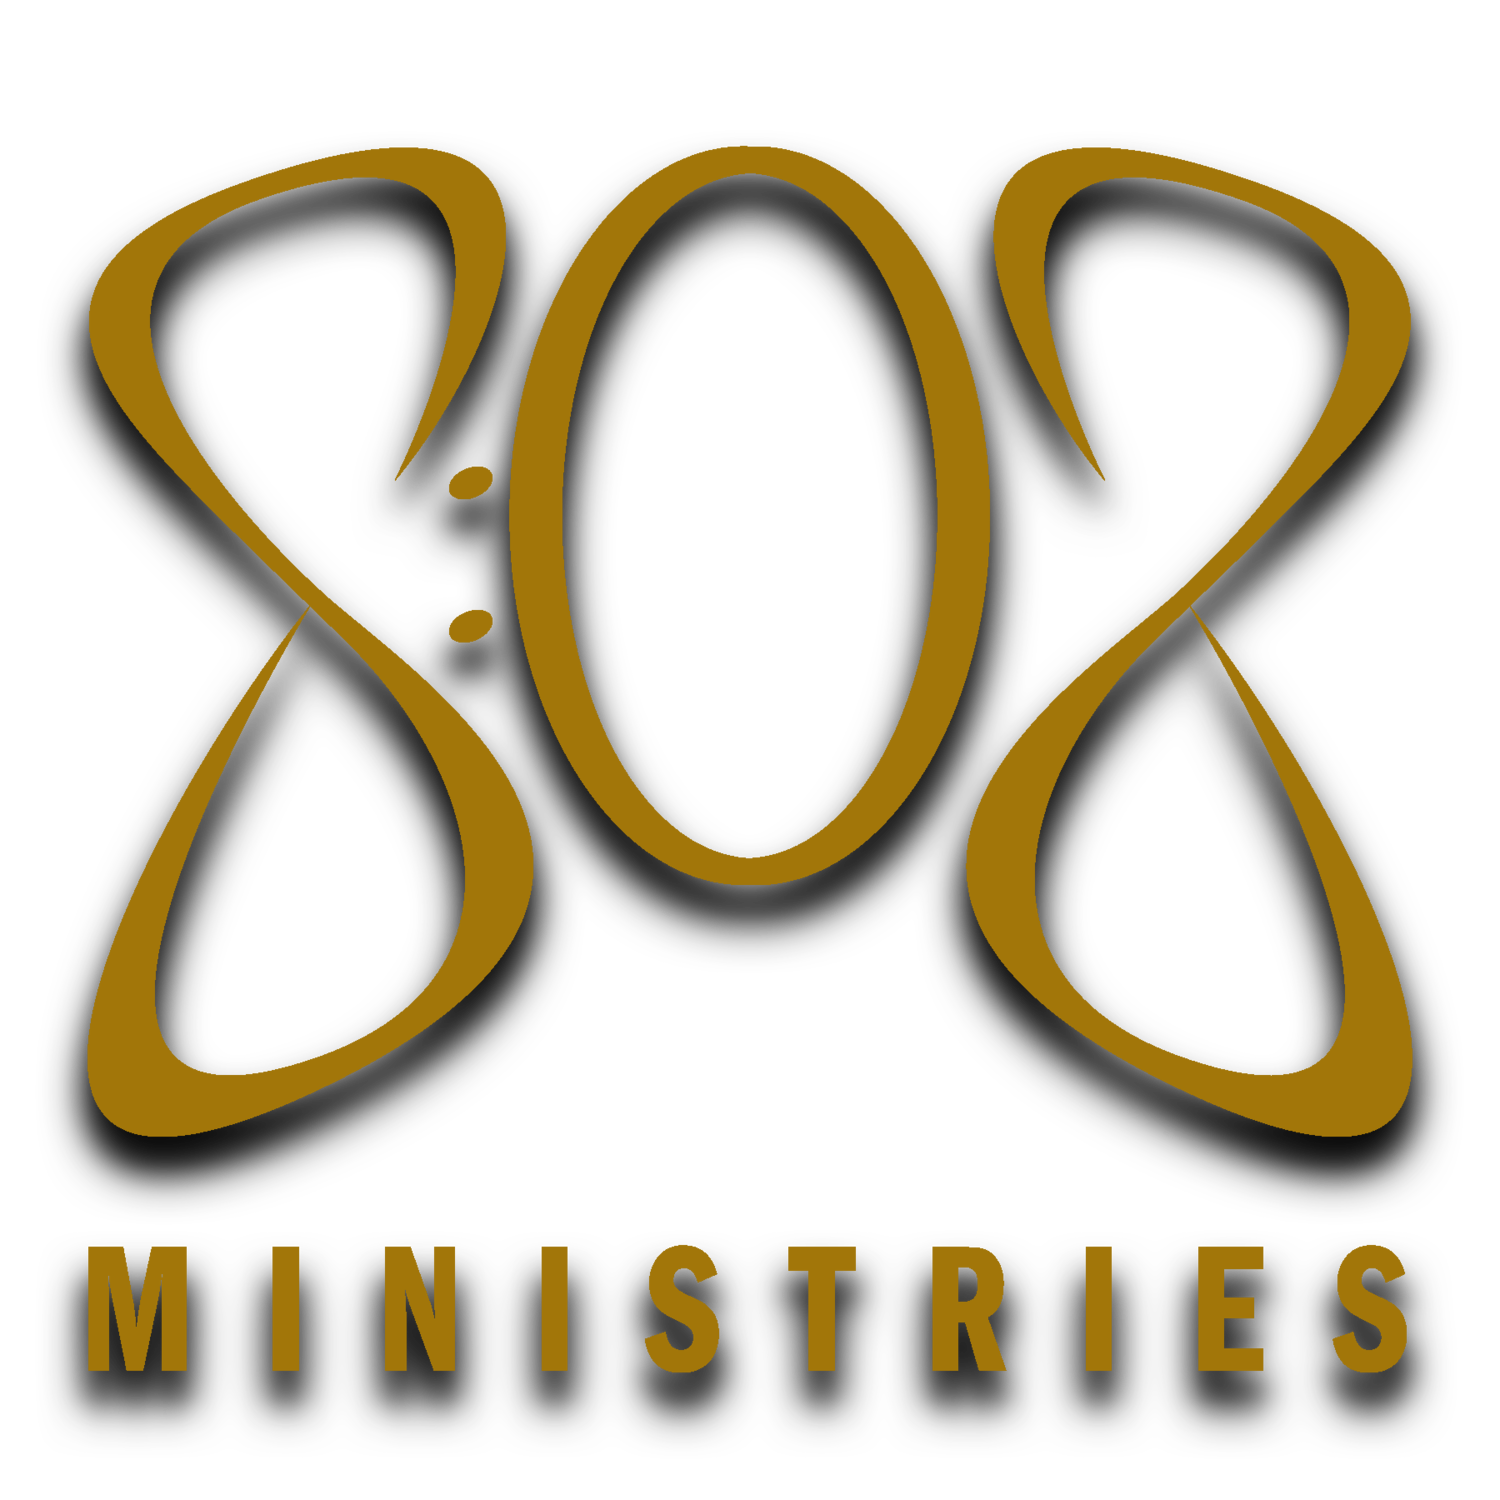 808 Ministries